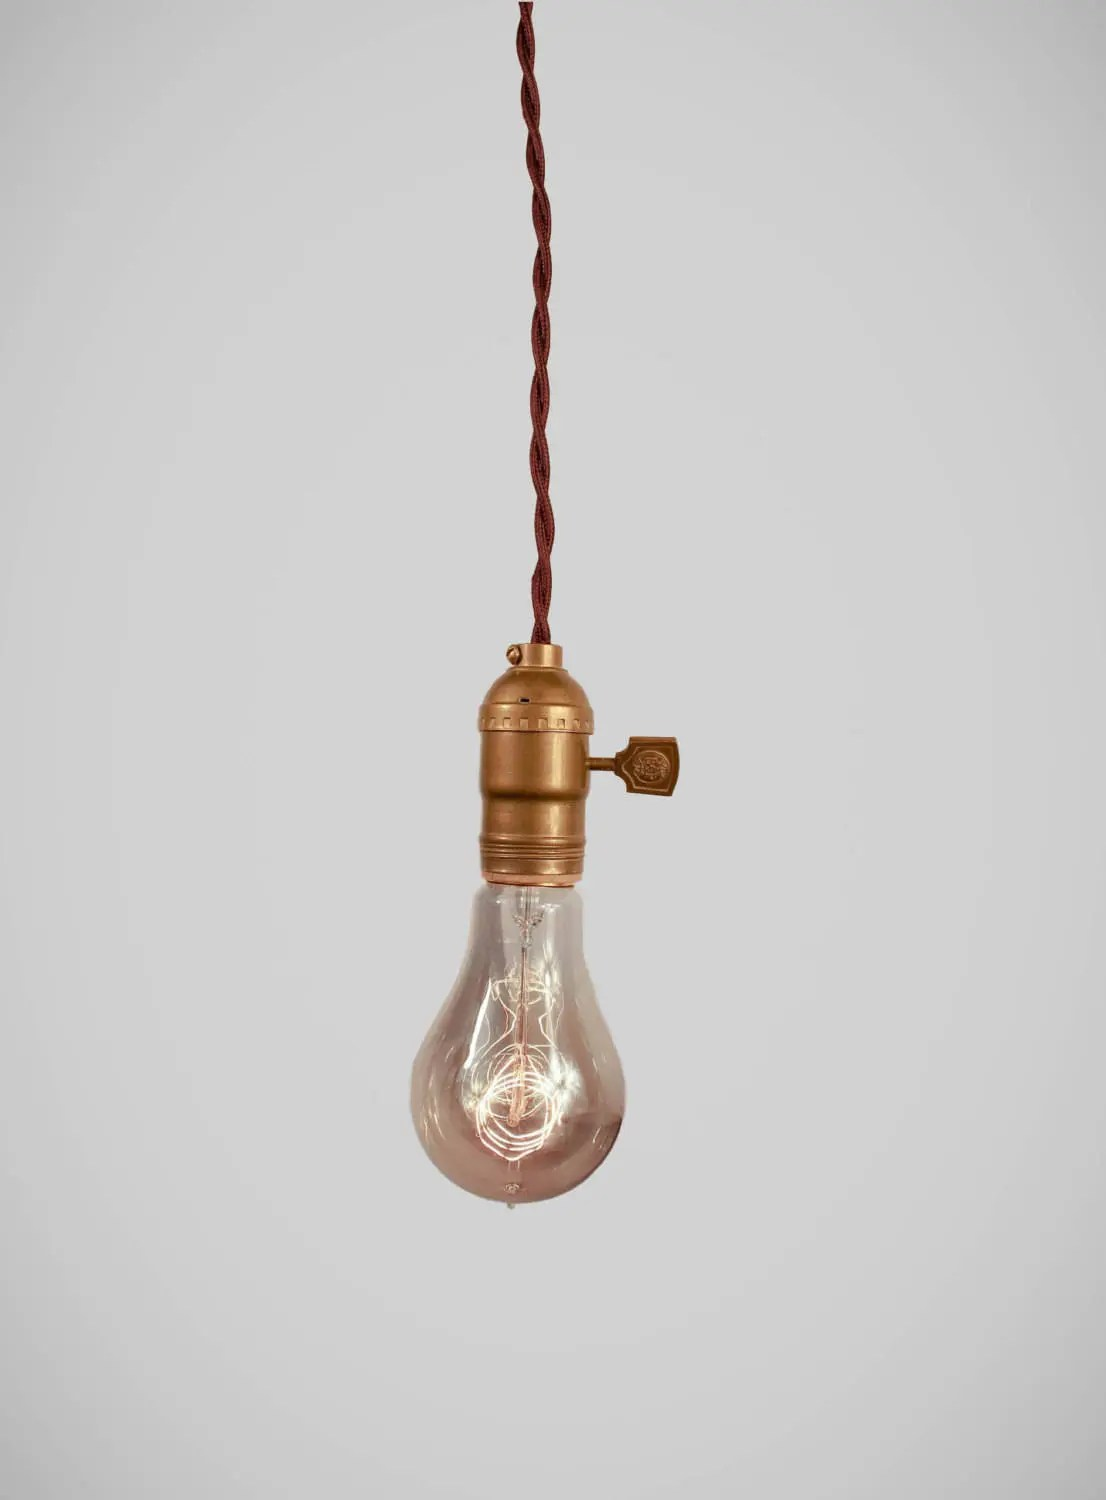 Hanging Lamp Vintage Pendant Light Cloth Cord Industrial Hanging Lamp Bare Bulb Minimalist Light Socket Antique Swag Victorian Chandelier